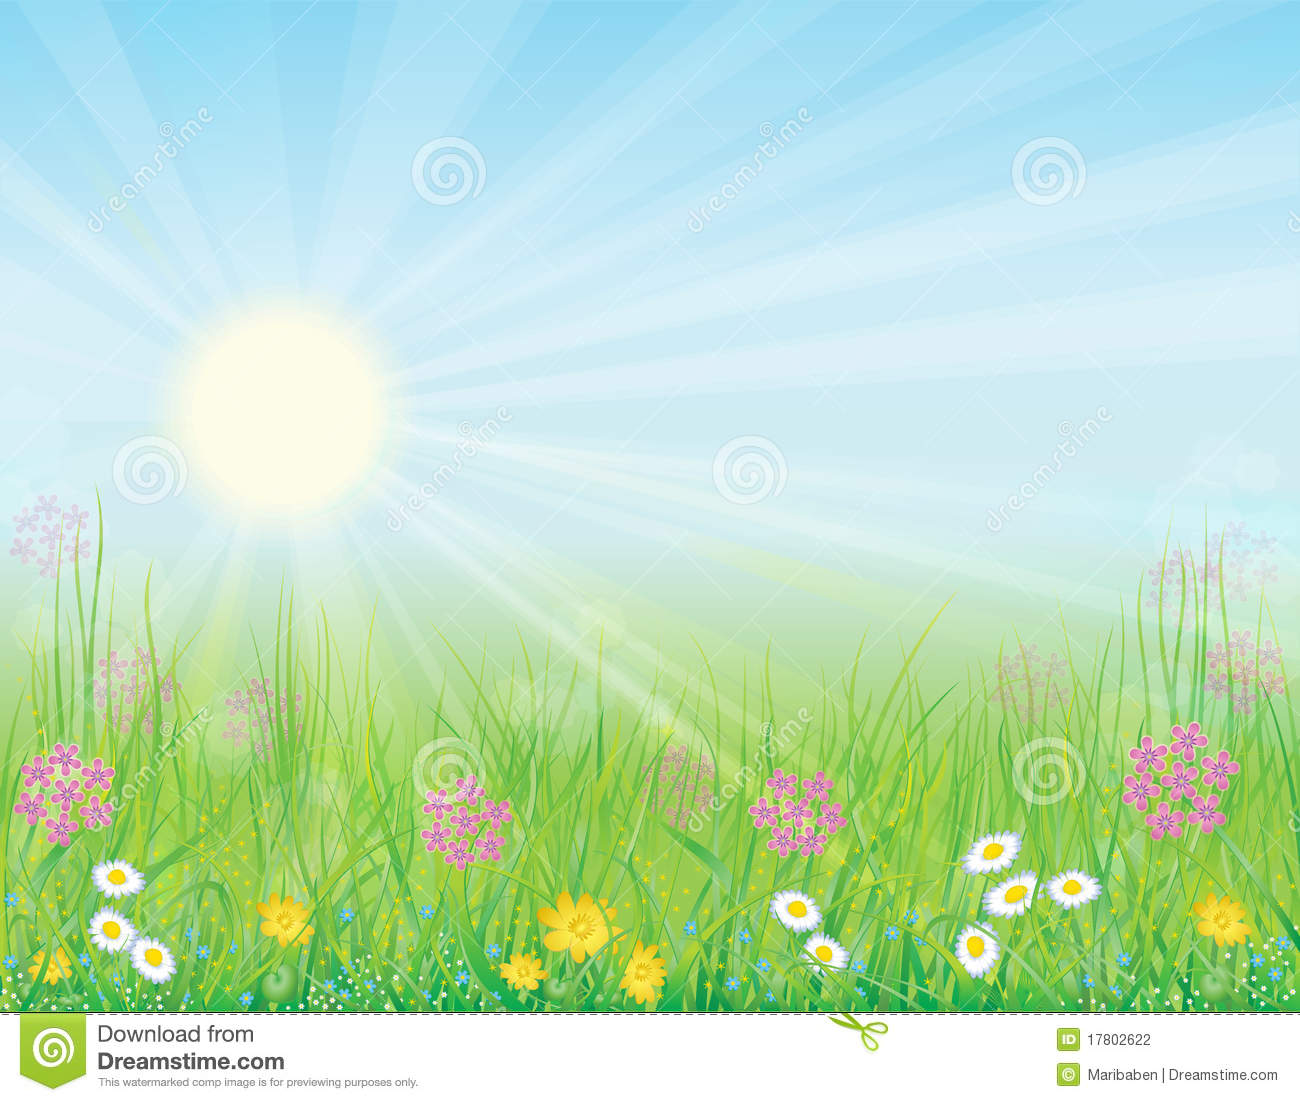 Meadow clipart #5, Download drawings